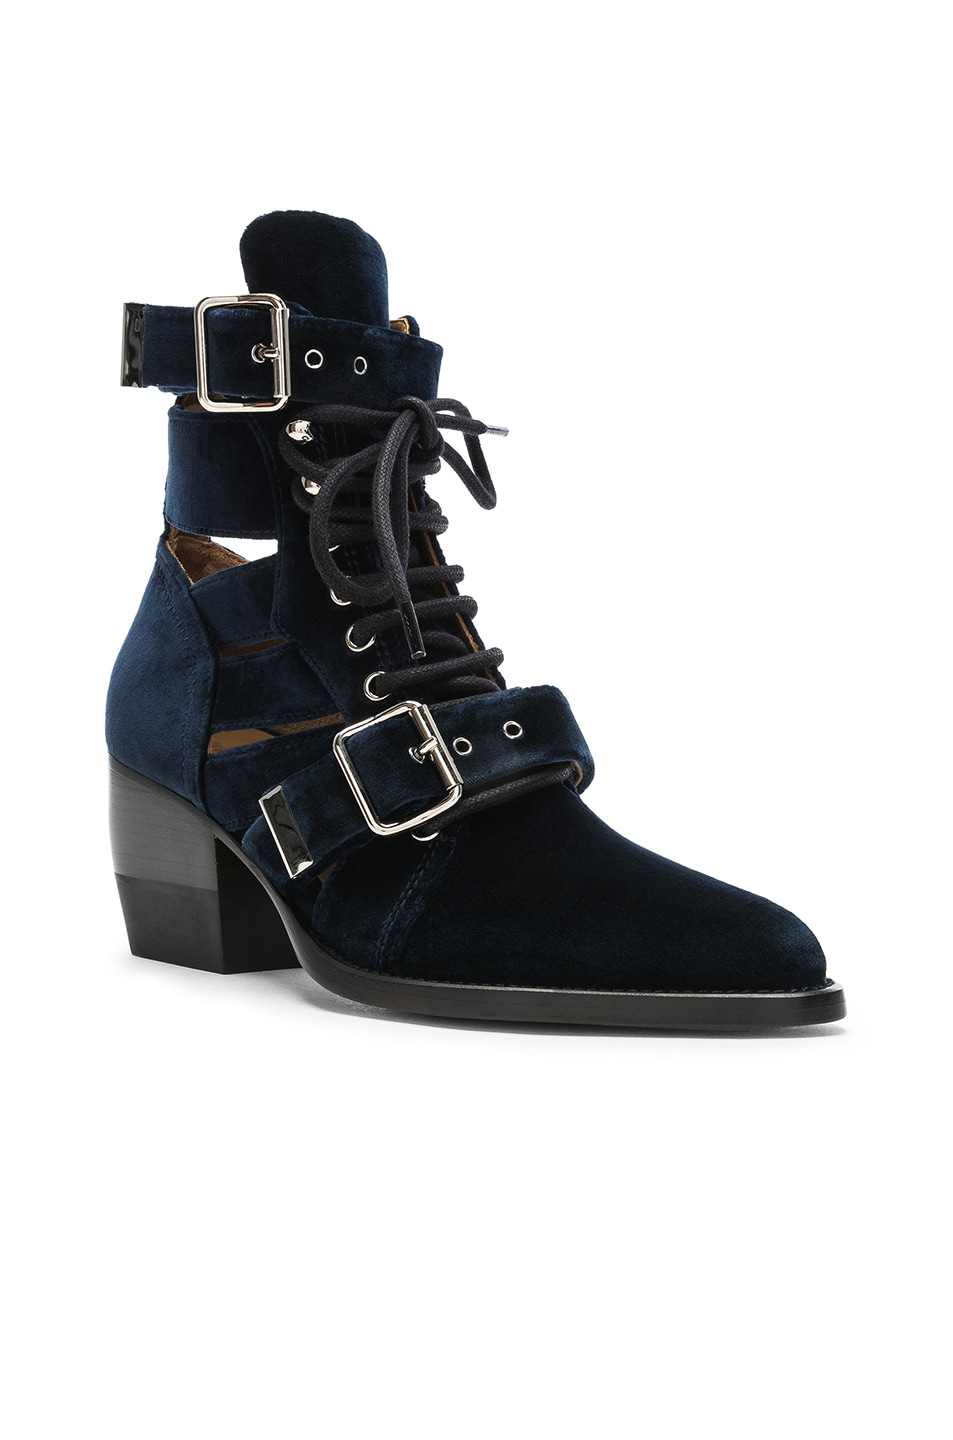 Image 2 of Chloe Rylee Velvet Lace Up Buckle Boots in Blue Lagoon